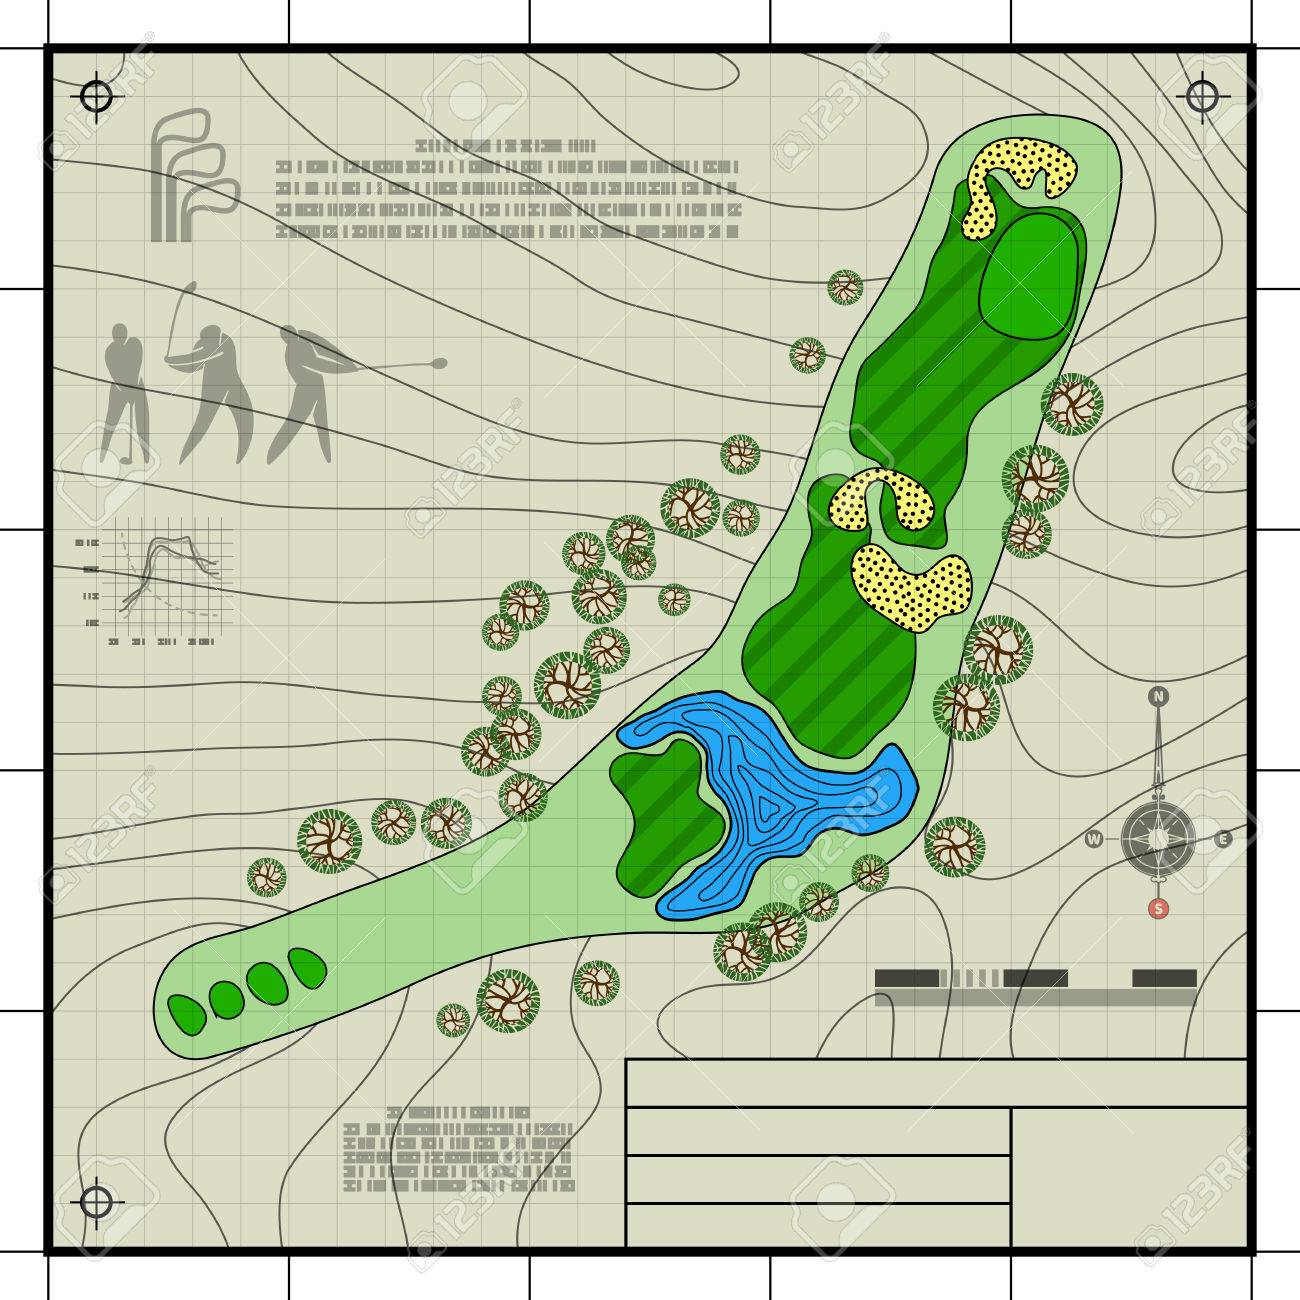 1300x1300 Golf Course Layout. Abstract Design Stylized Blueprint Technical